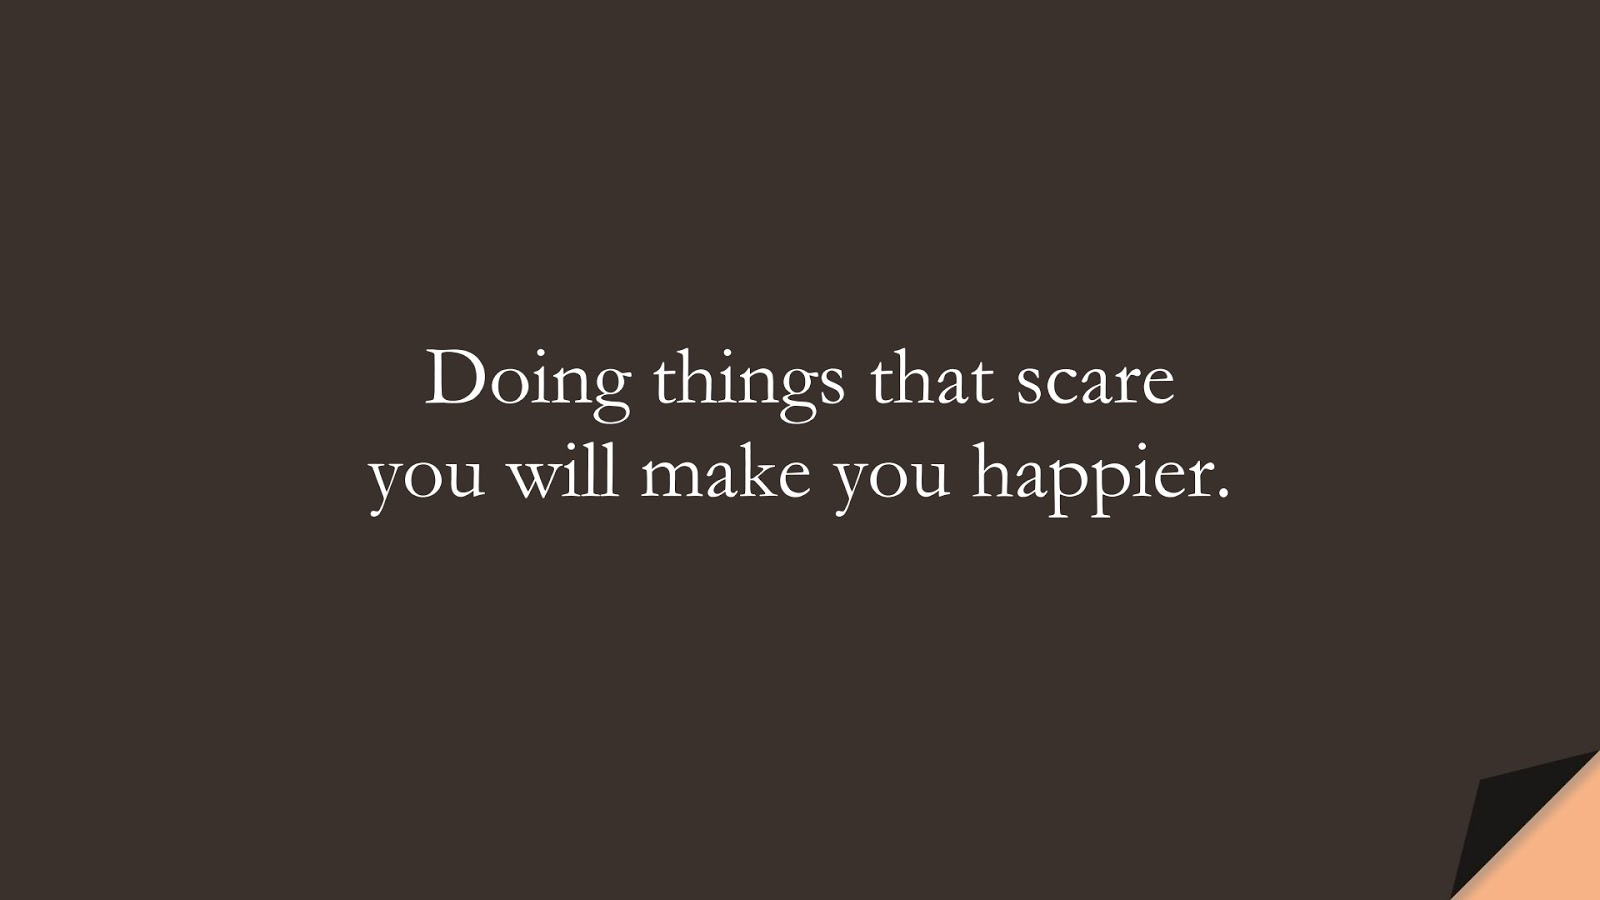 Doing things that scare you will make you happier.FALSE